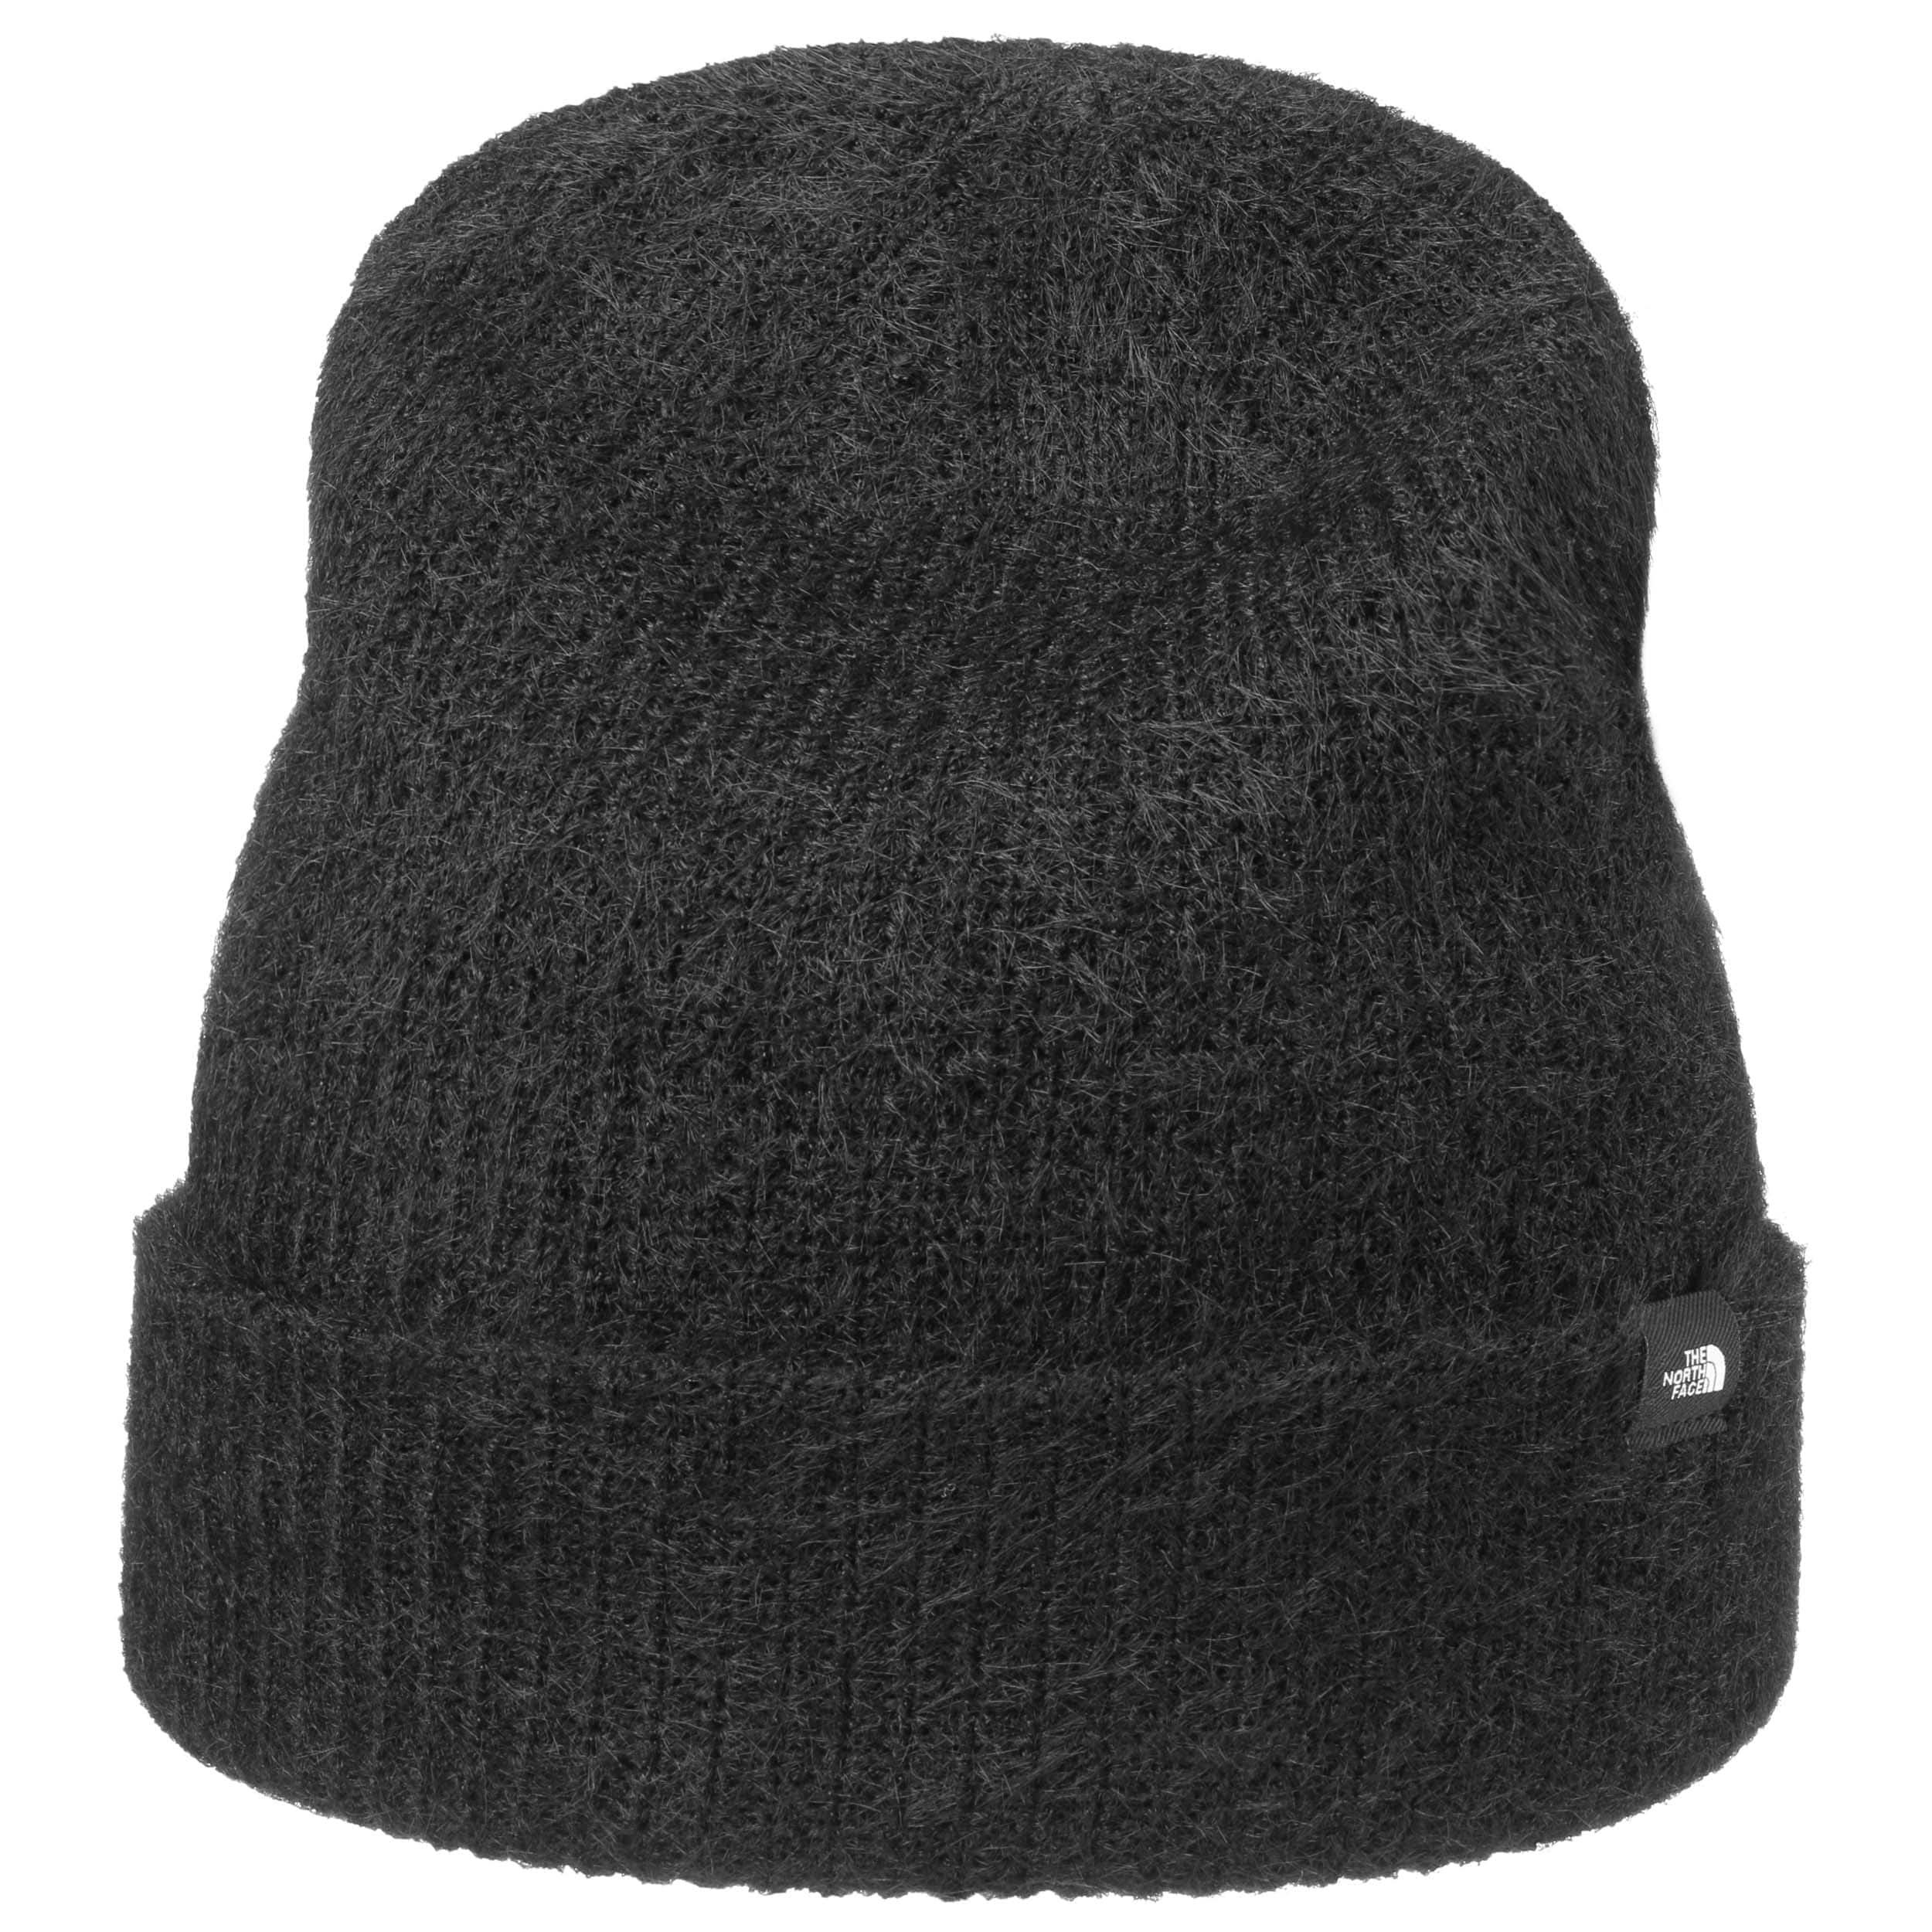 a8132fab2 Plush Beanie Hat by The North Face